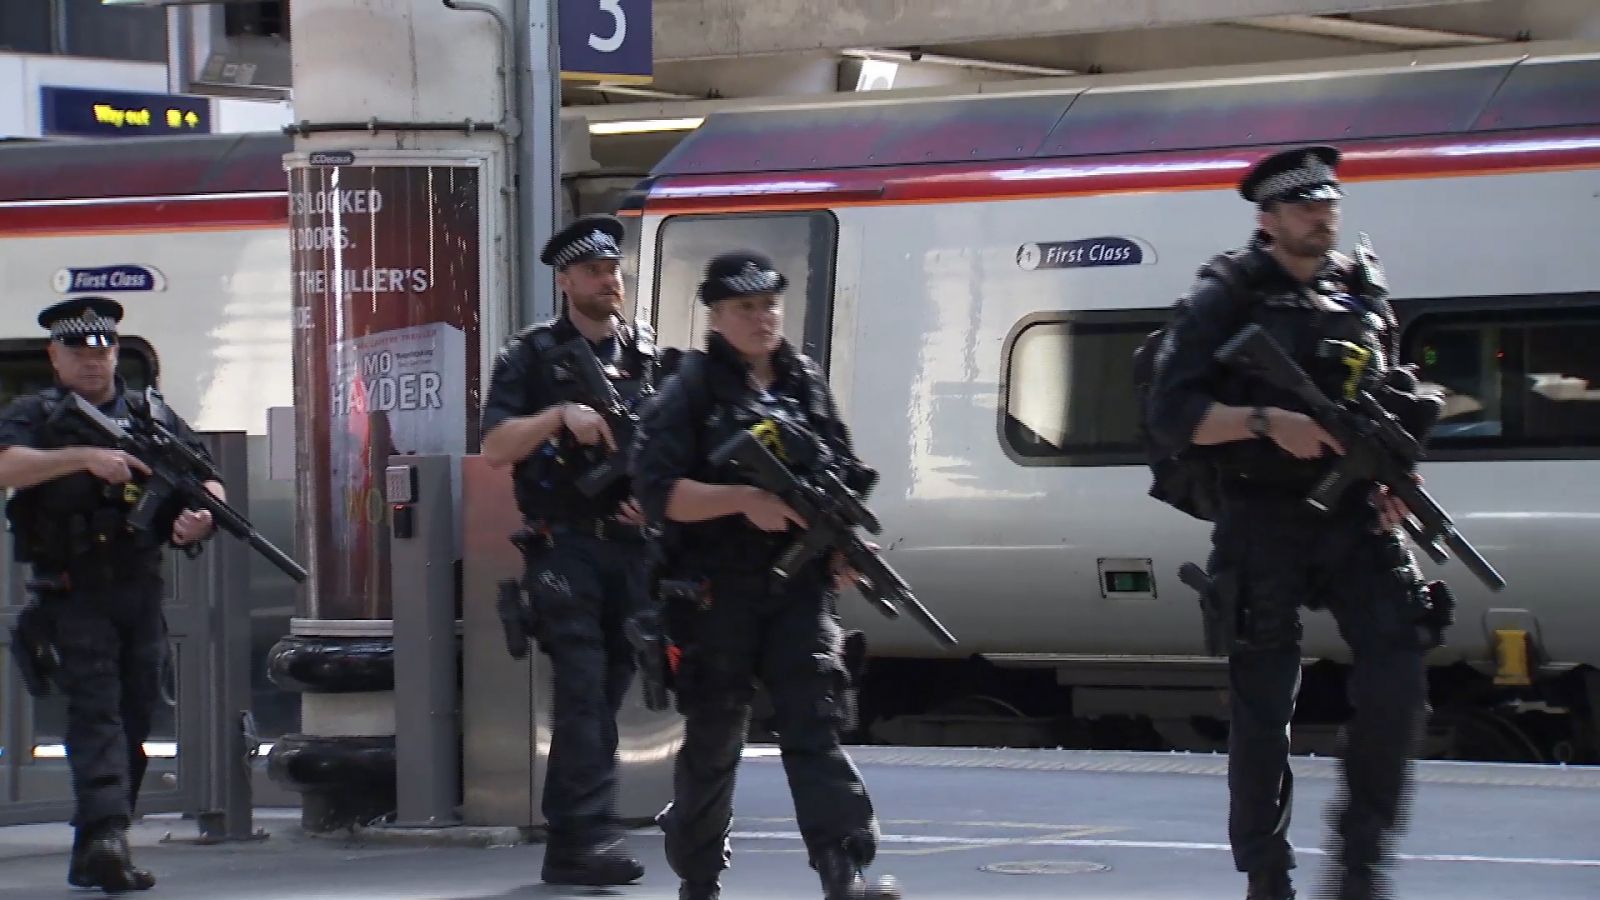 Armed police patrol major U.K. train stations after terror attack